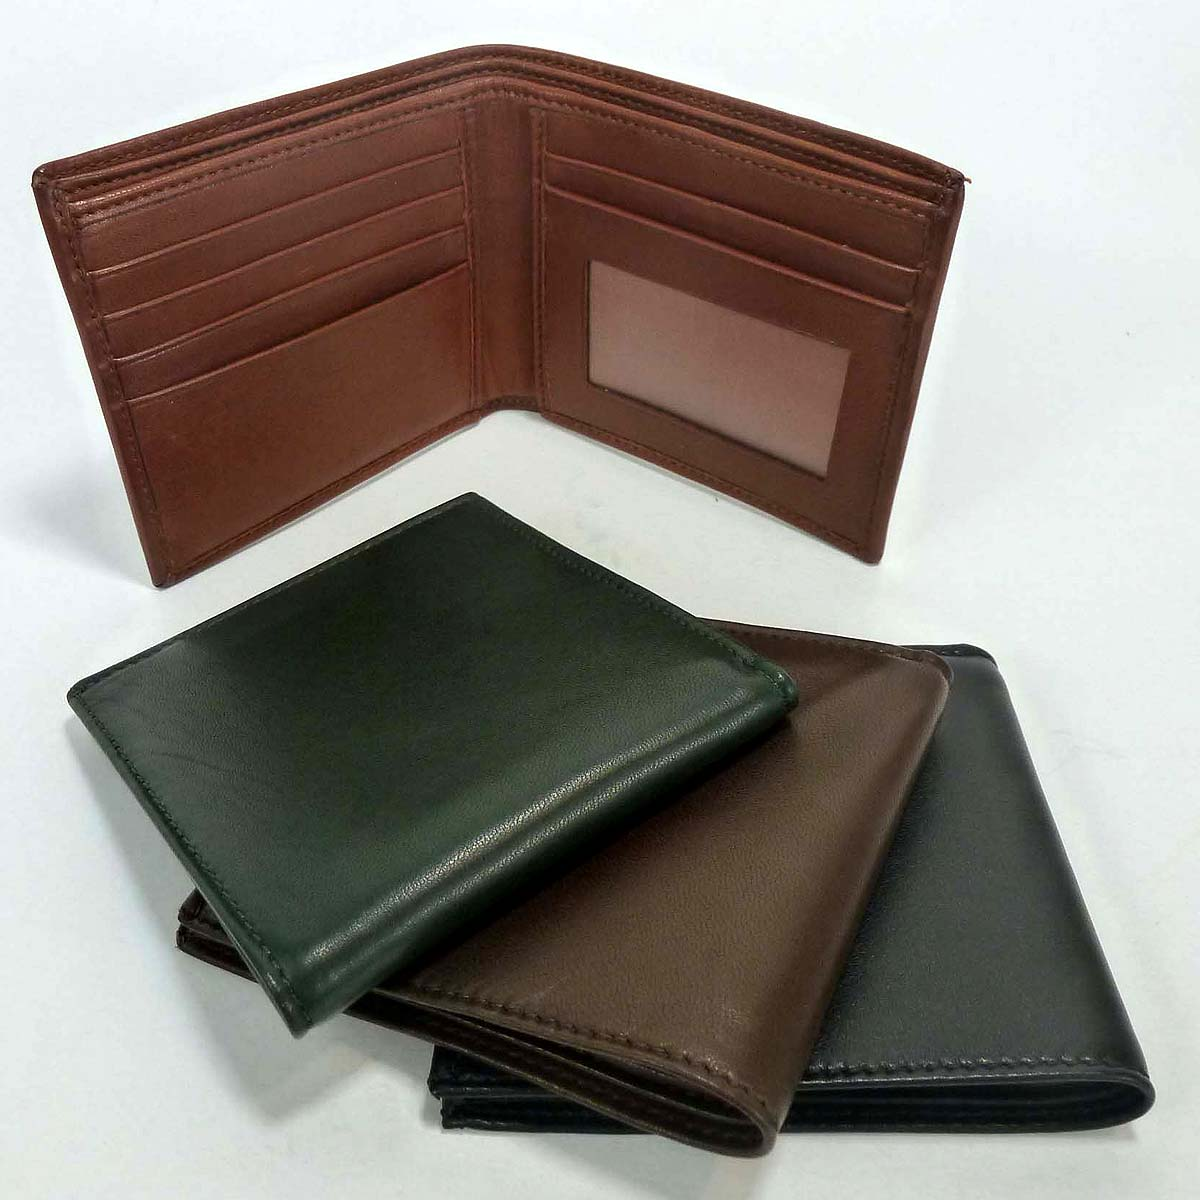 1313 men's wallet 5 cards with window by Bottega Fiorentina